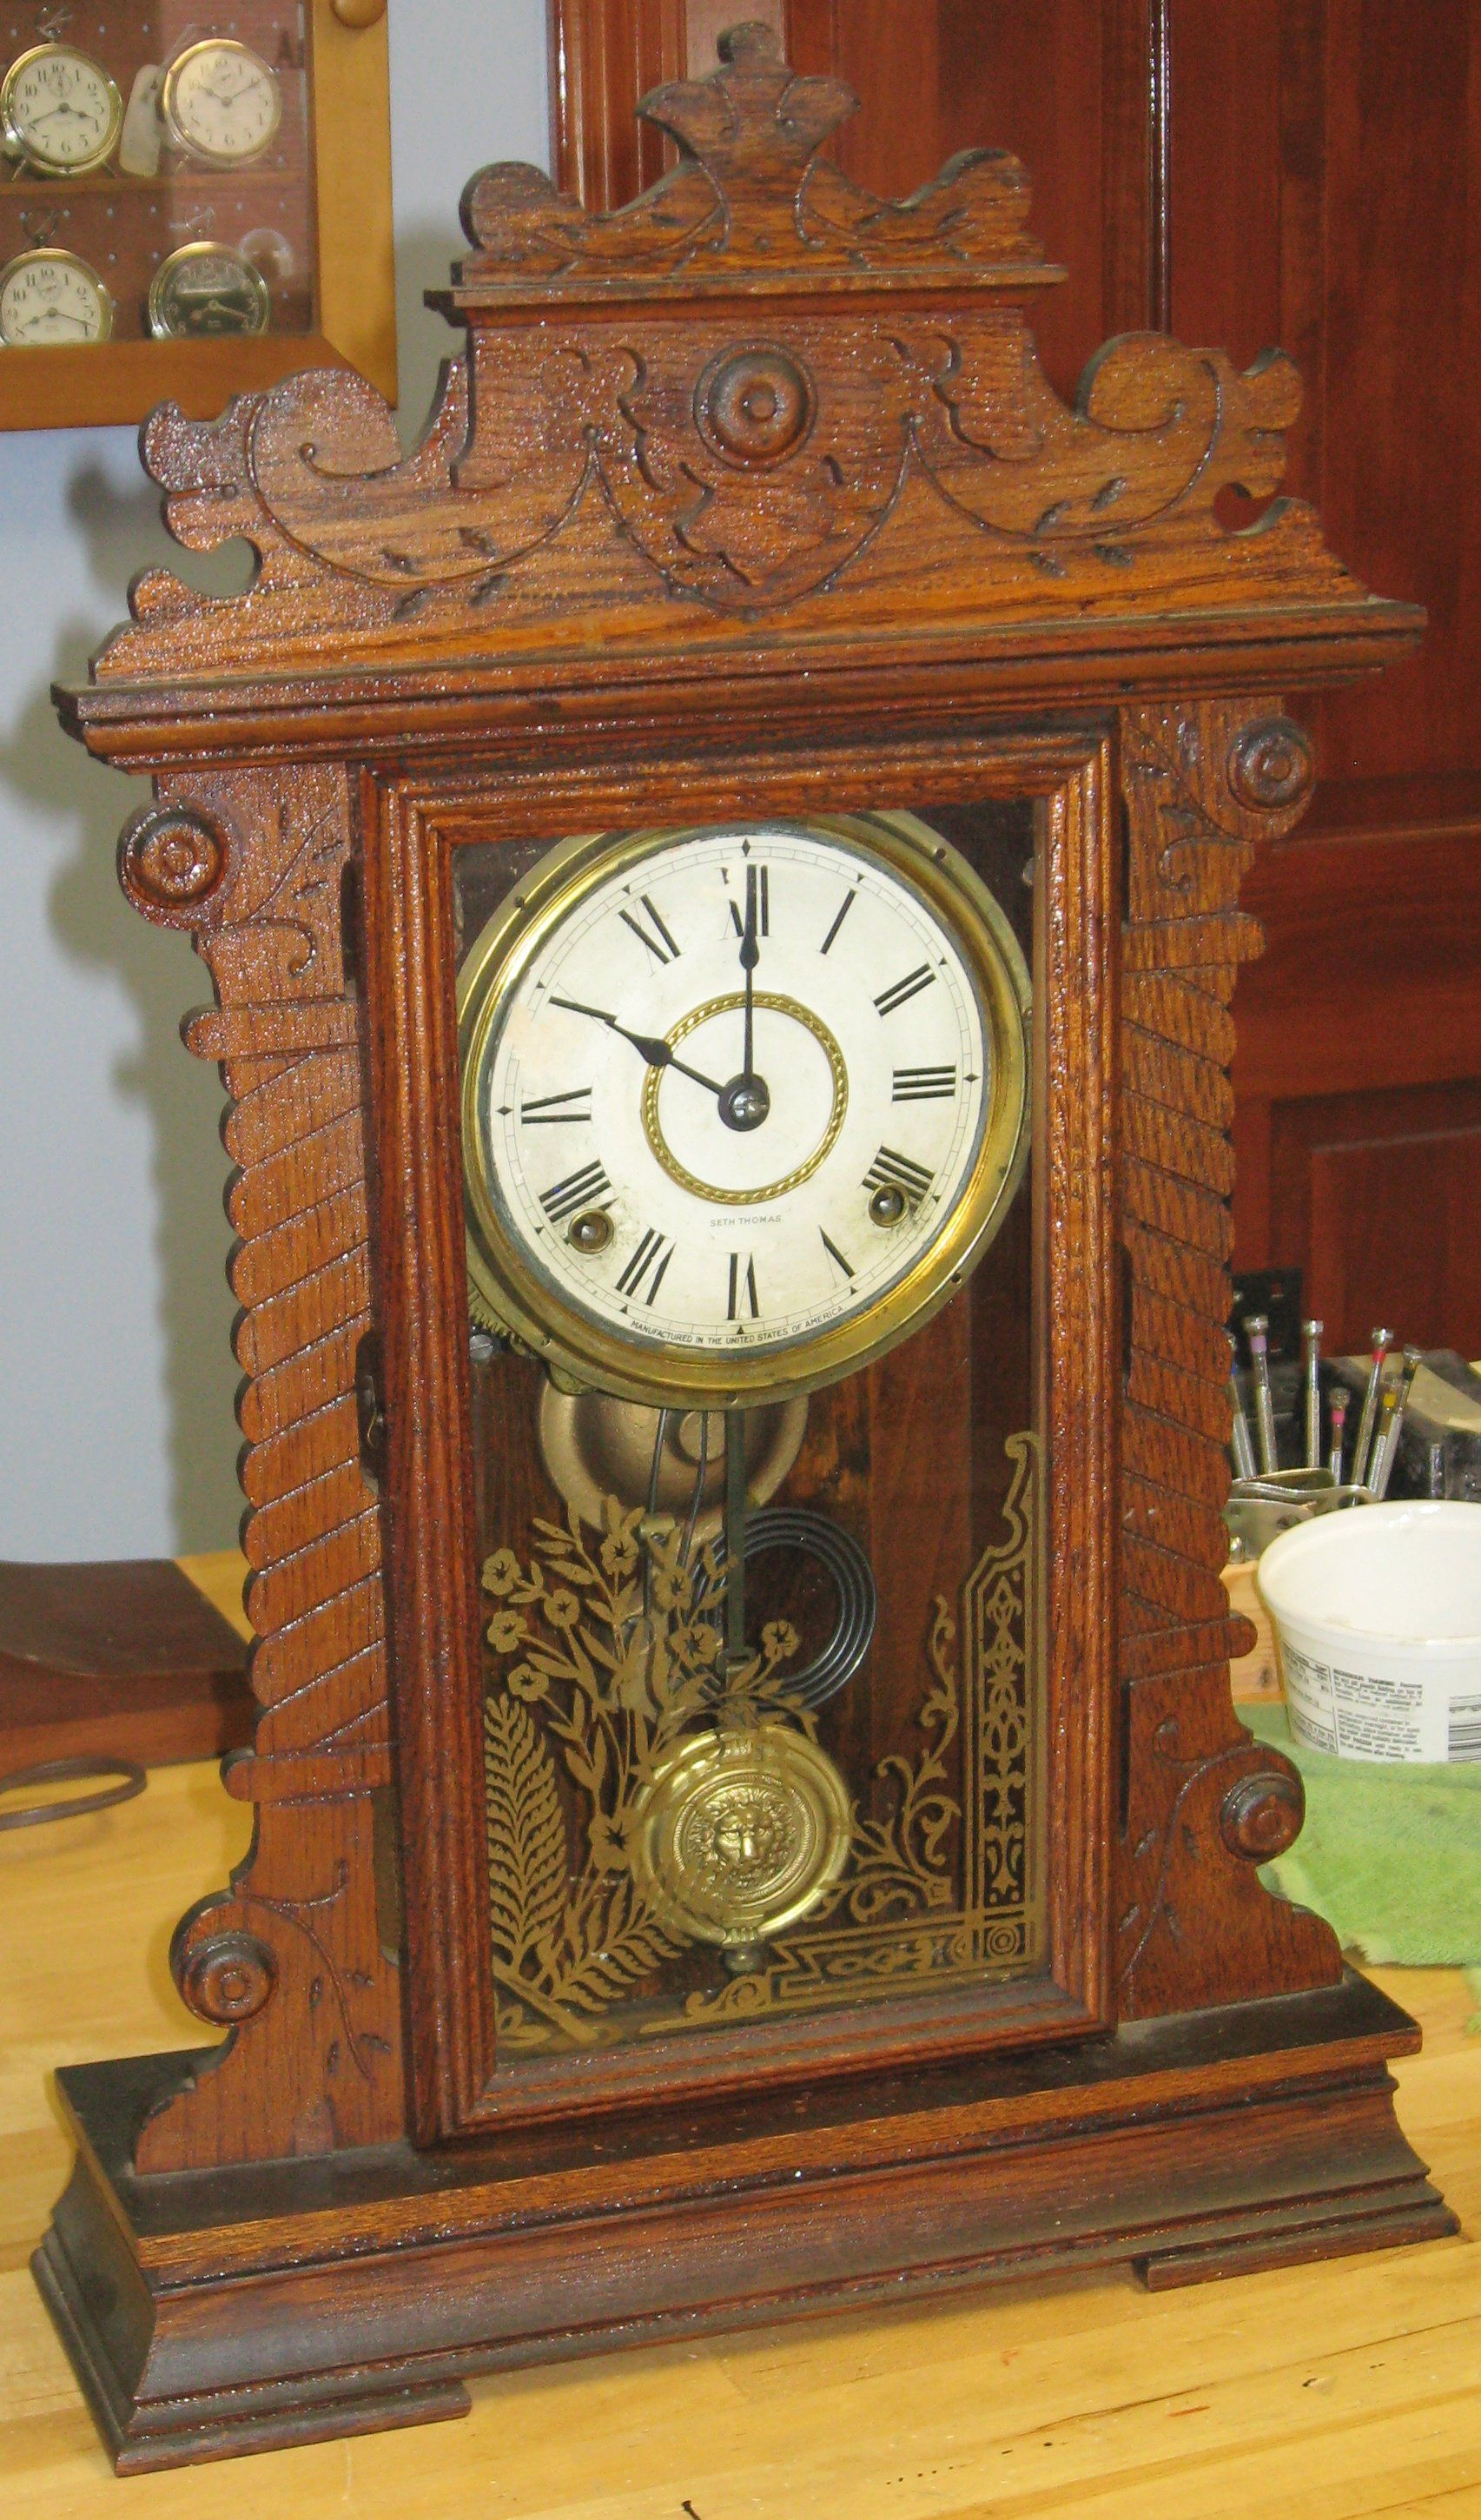 Dating seth thomas mantel clocks